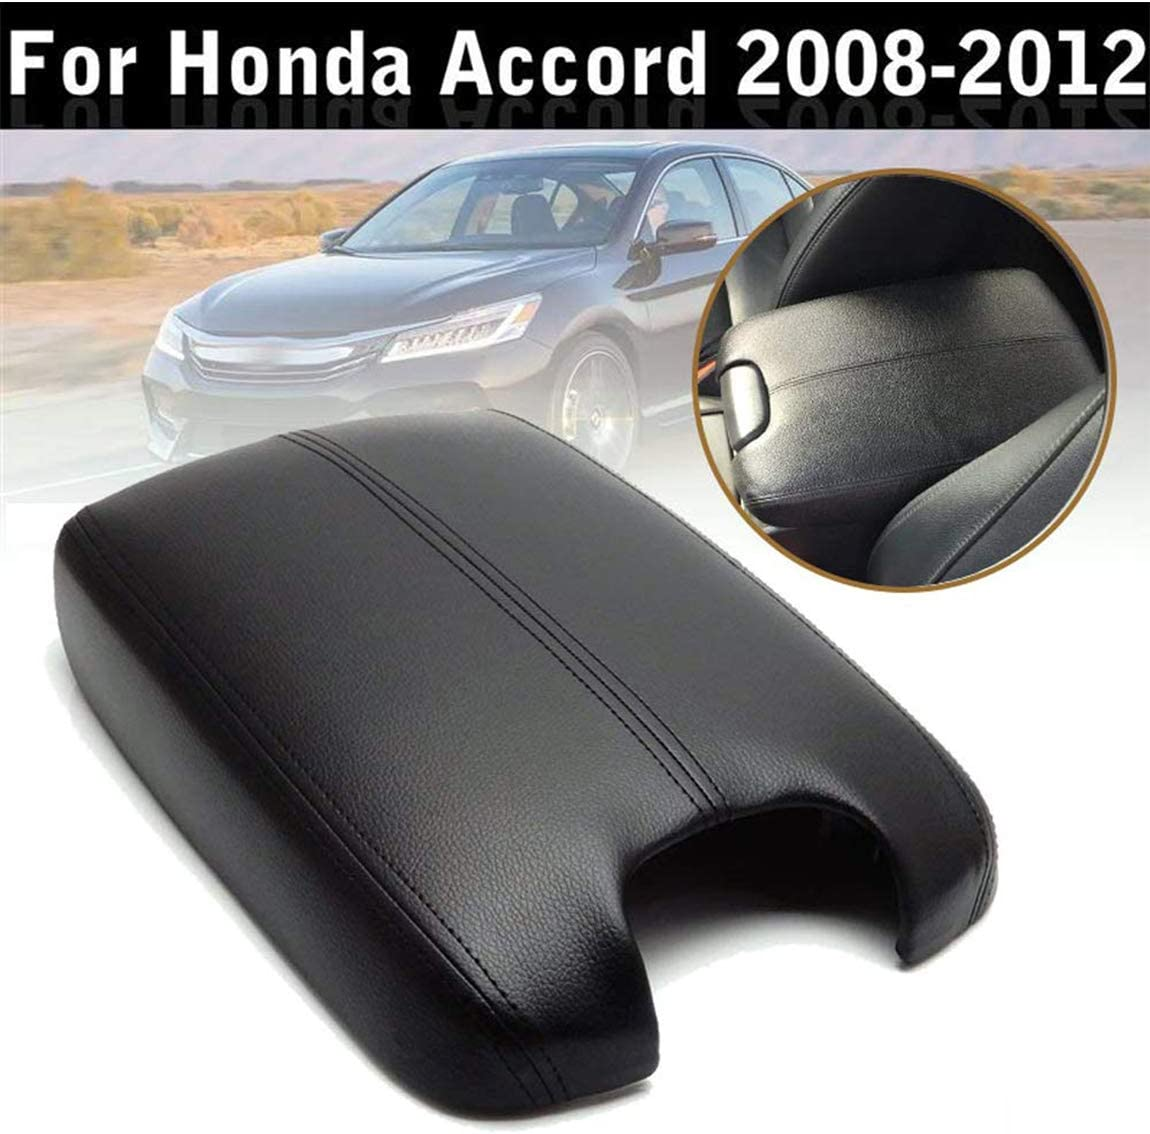 Gray PU Leather Center Console Lid Armrest Cover Skin For 2008-2012 Honda Accord